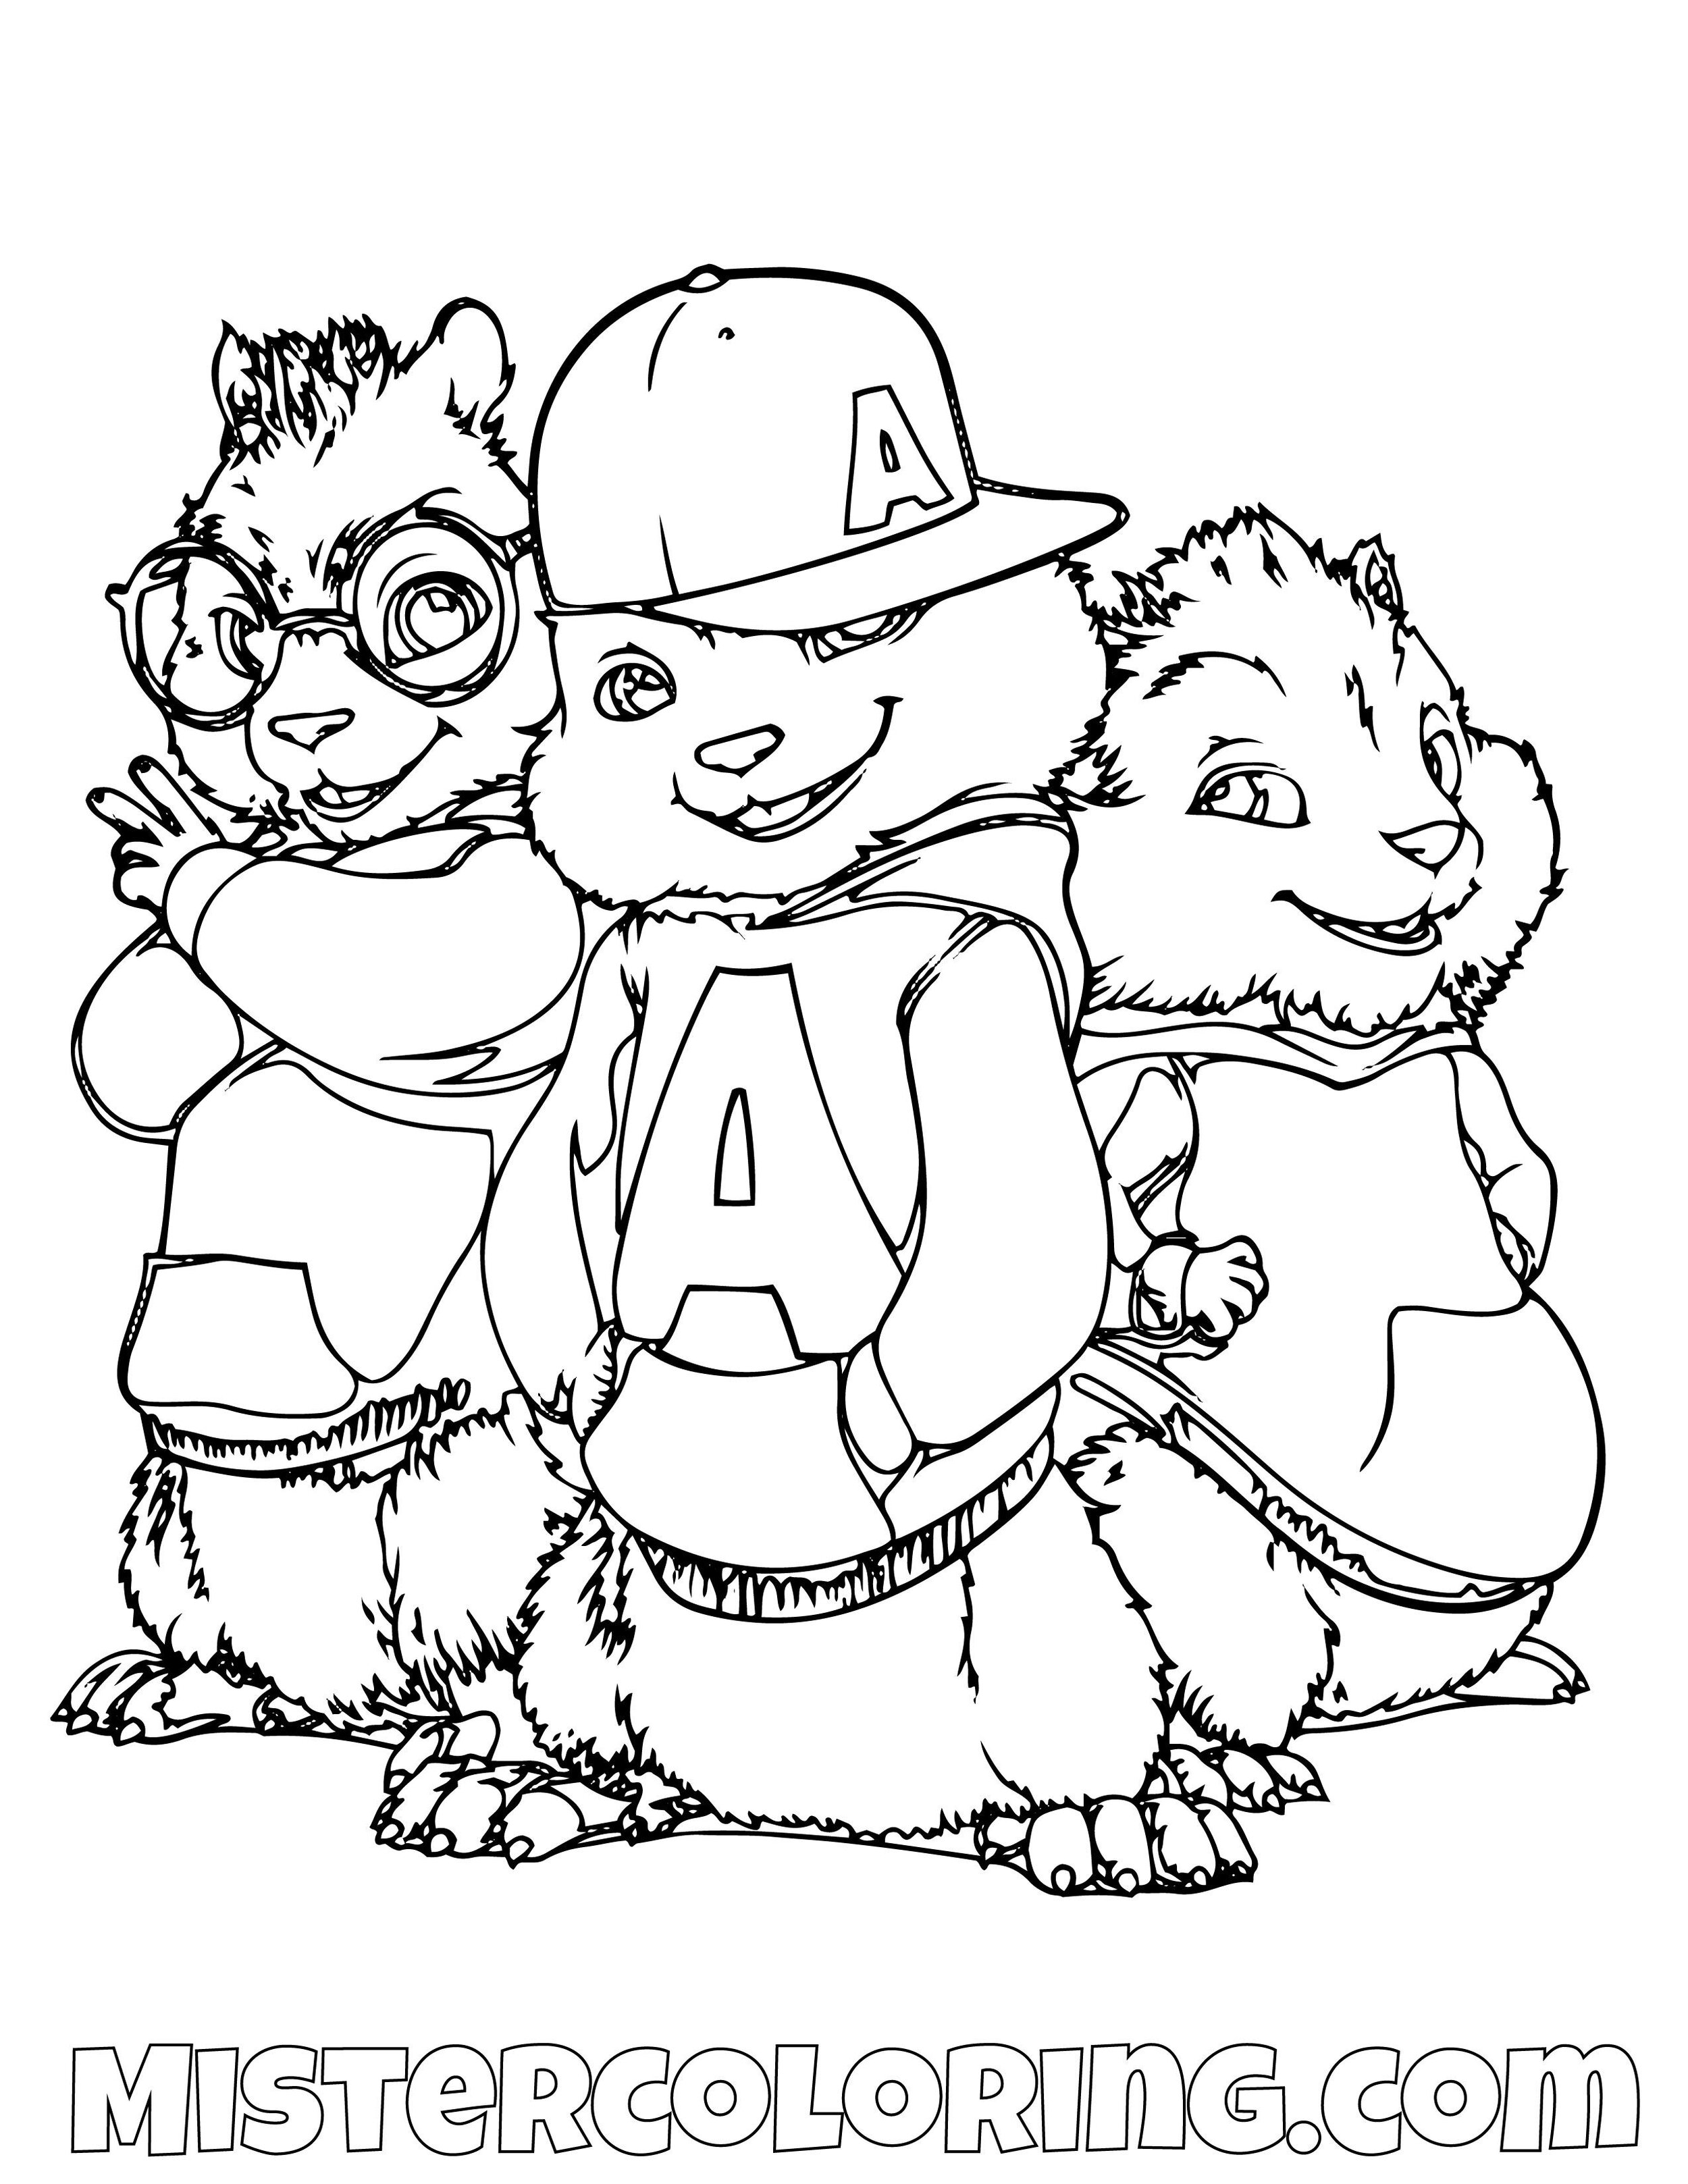 Alvin and the Chipmunks and The Chipettes coloring page | Free ... | 1294x1000